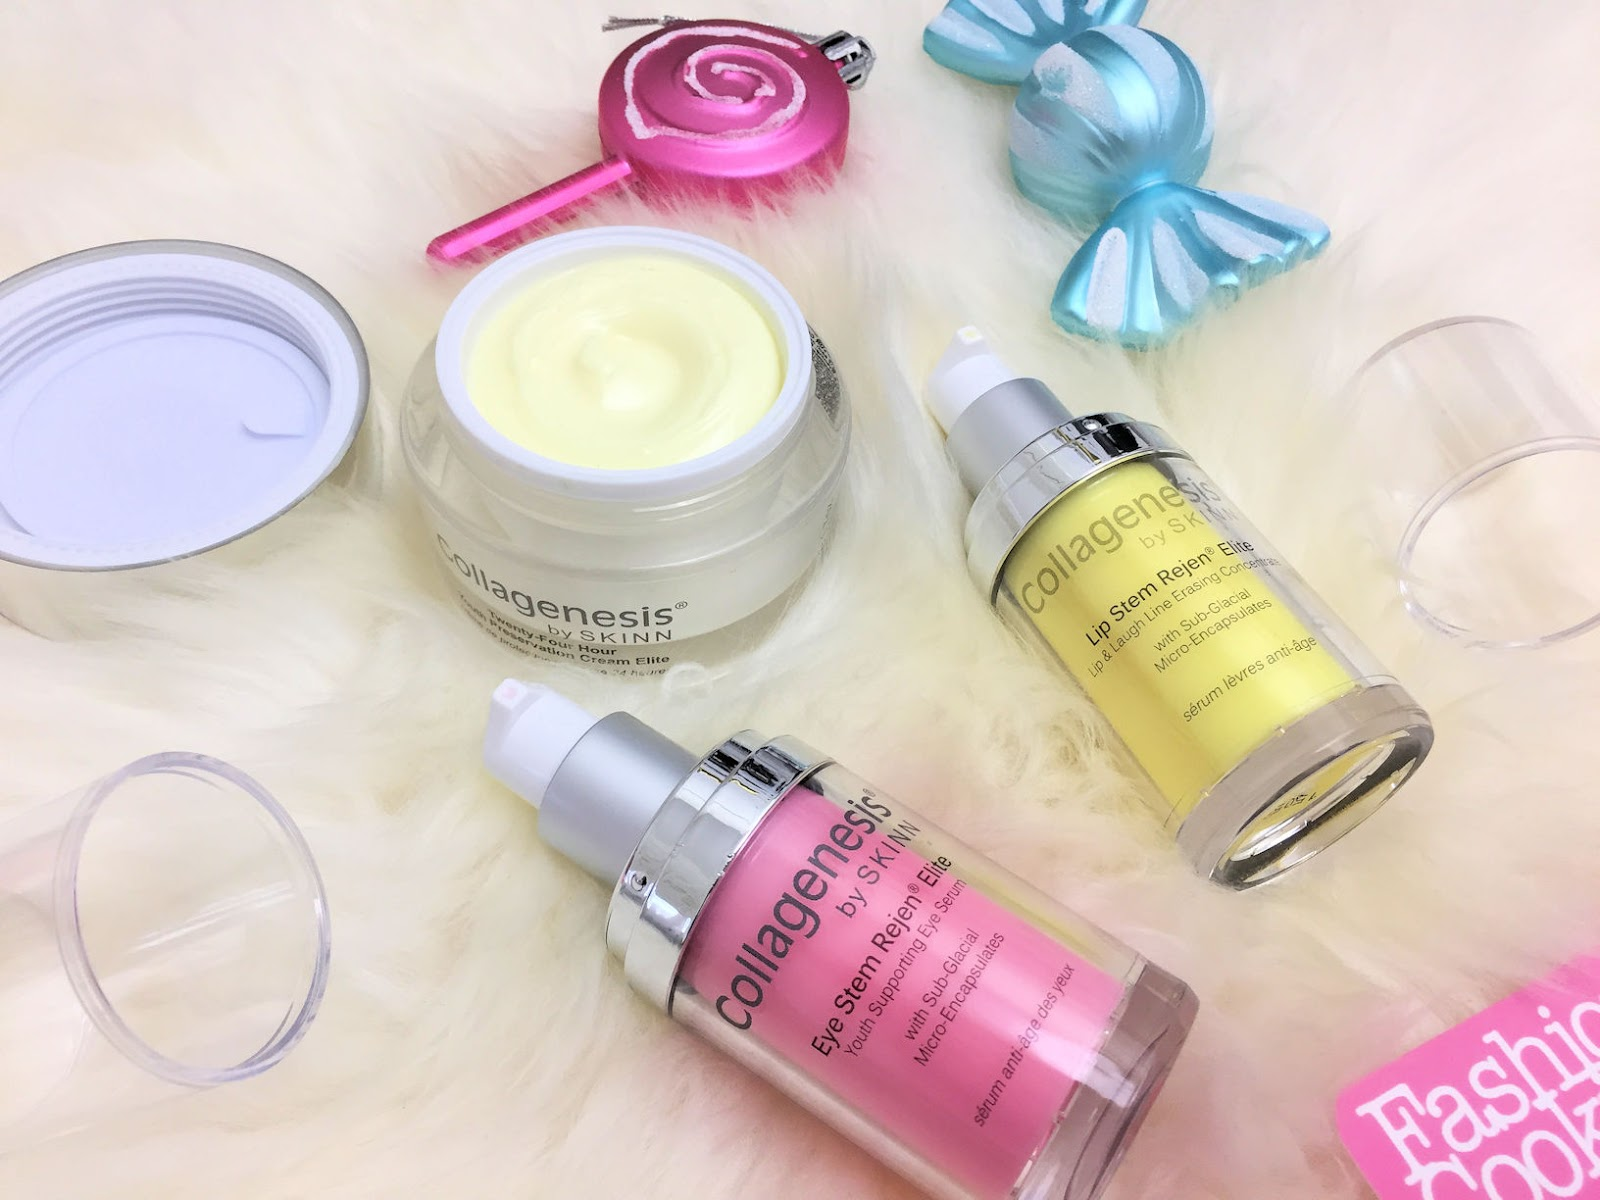 SKINN Collagenesis creams review on Fashion and Cookies beauty blog, beauty blogger